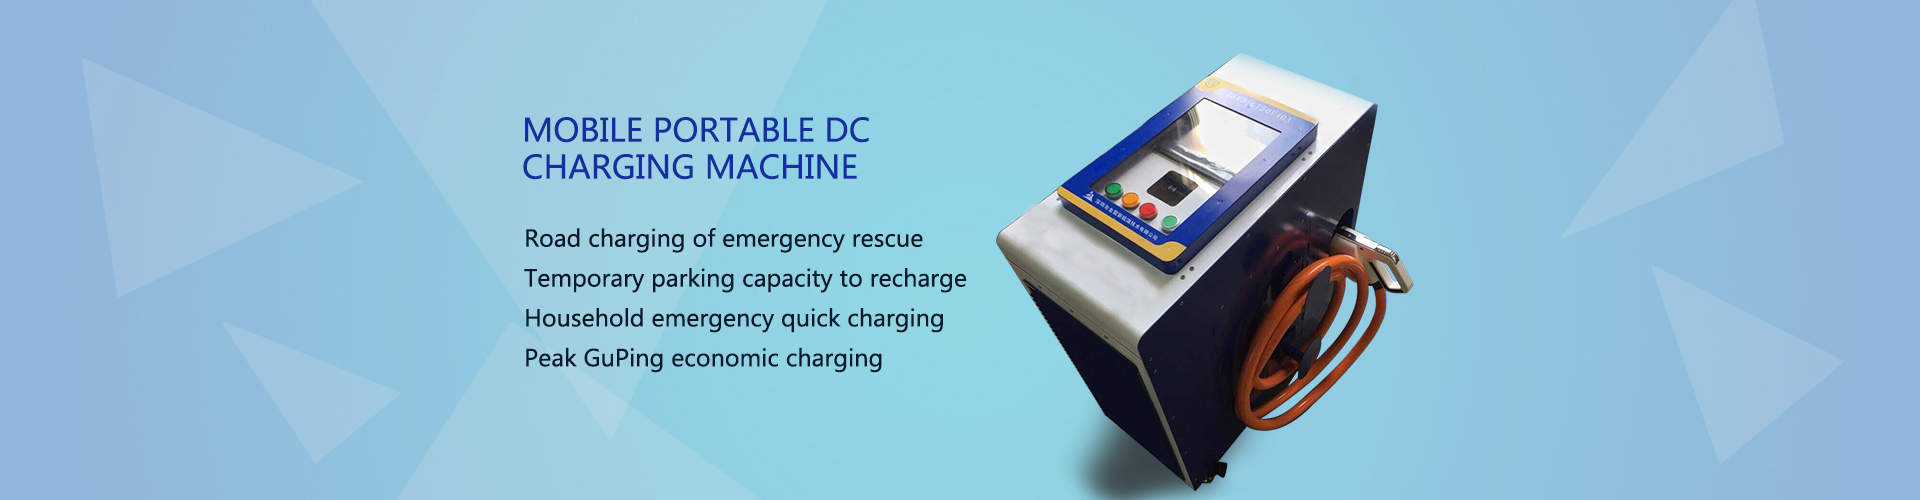 Mobile portable DC charging machine